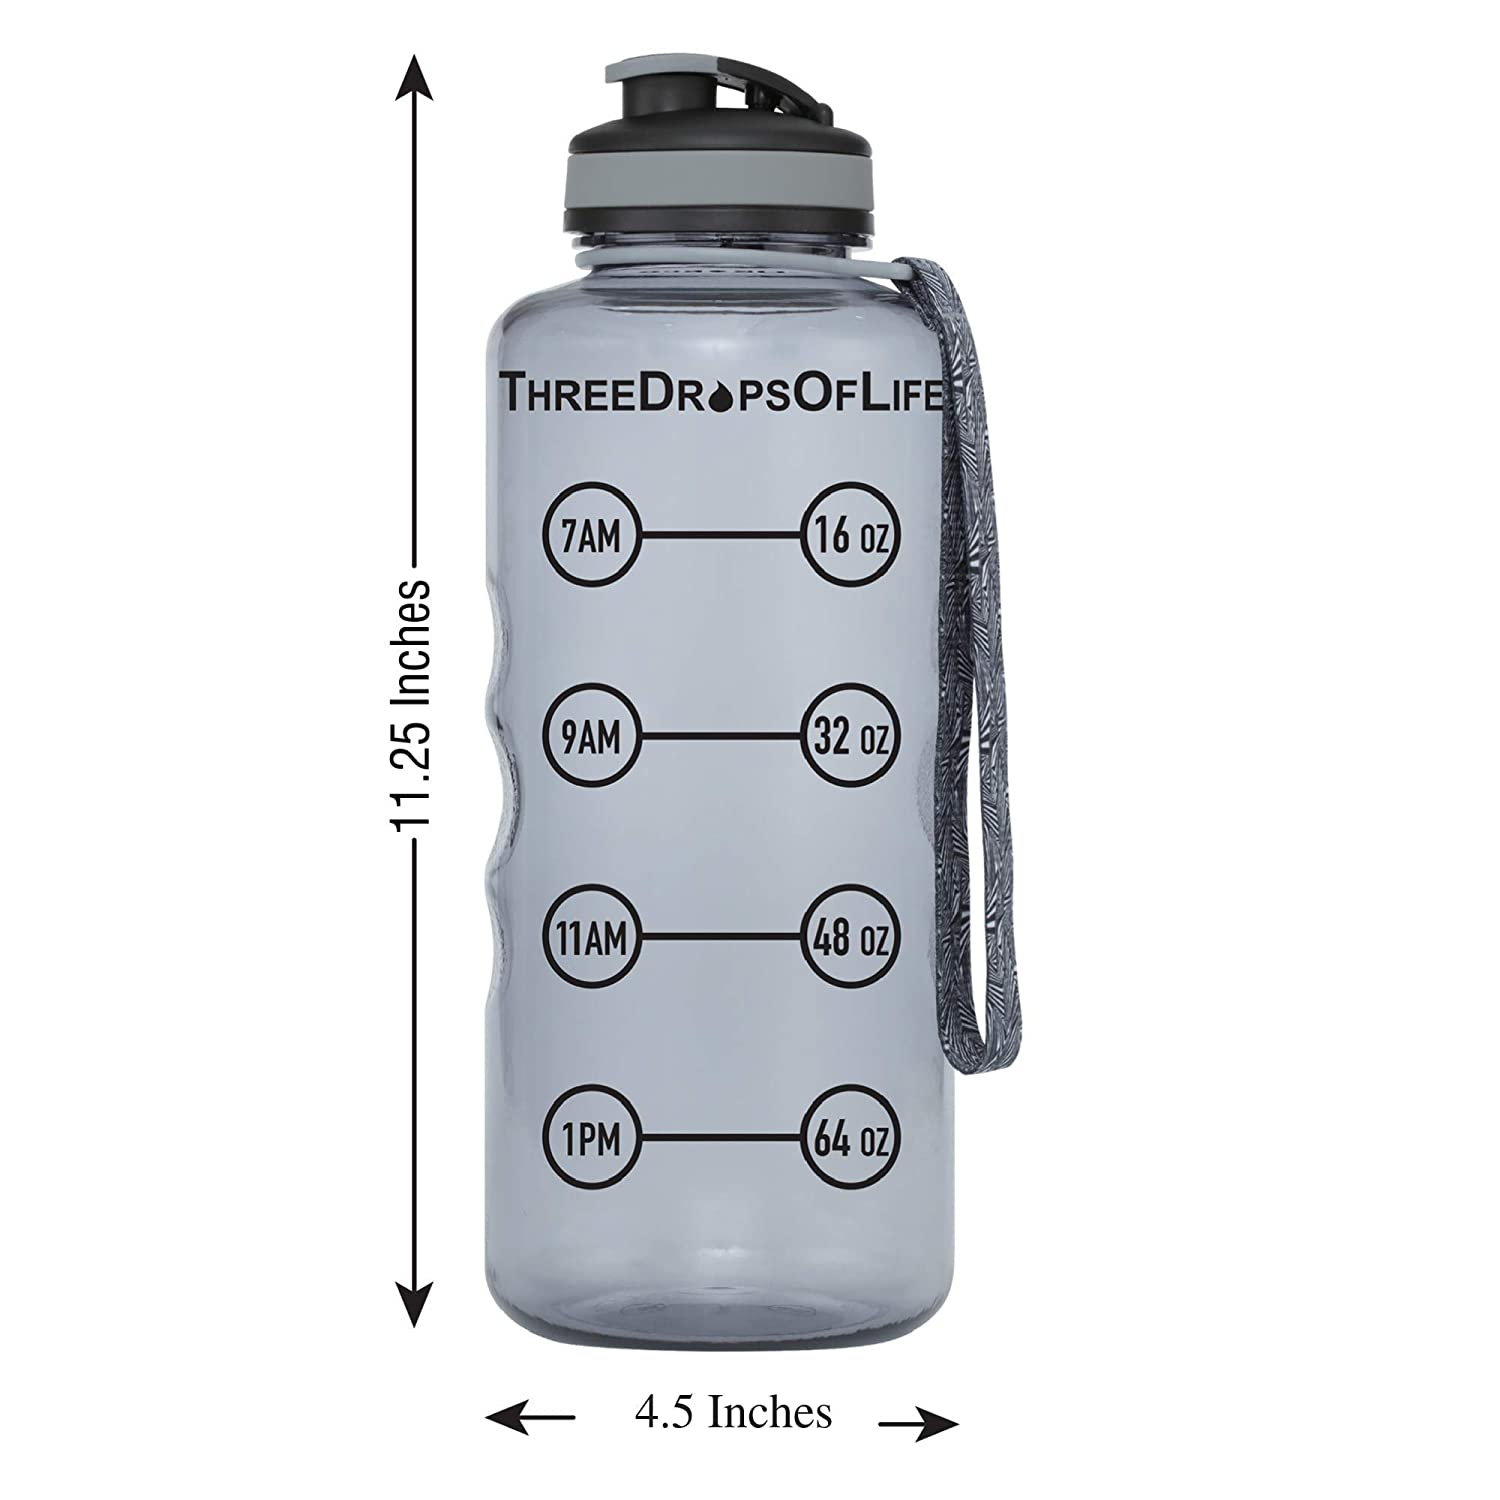 Best Daily Hydration Monitor Three Drops of Life 64oz Hydration Tracking Large Sports Water Bottle The Largest Time Tracker Sport Bottles